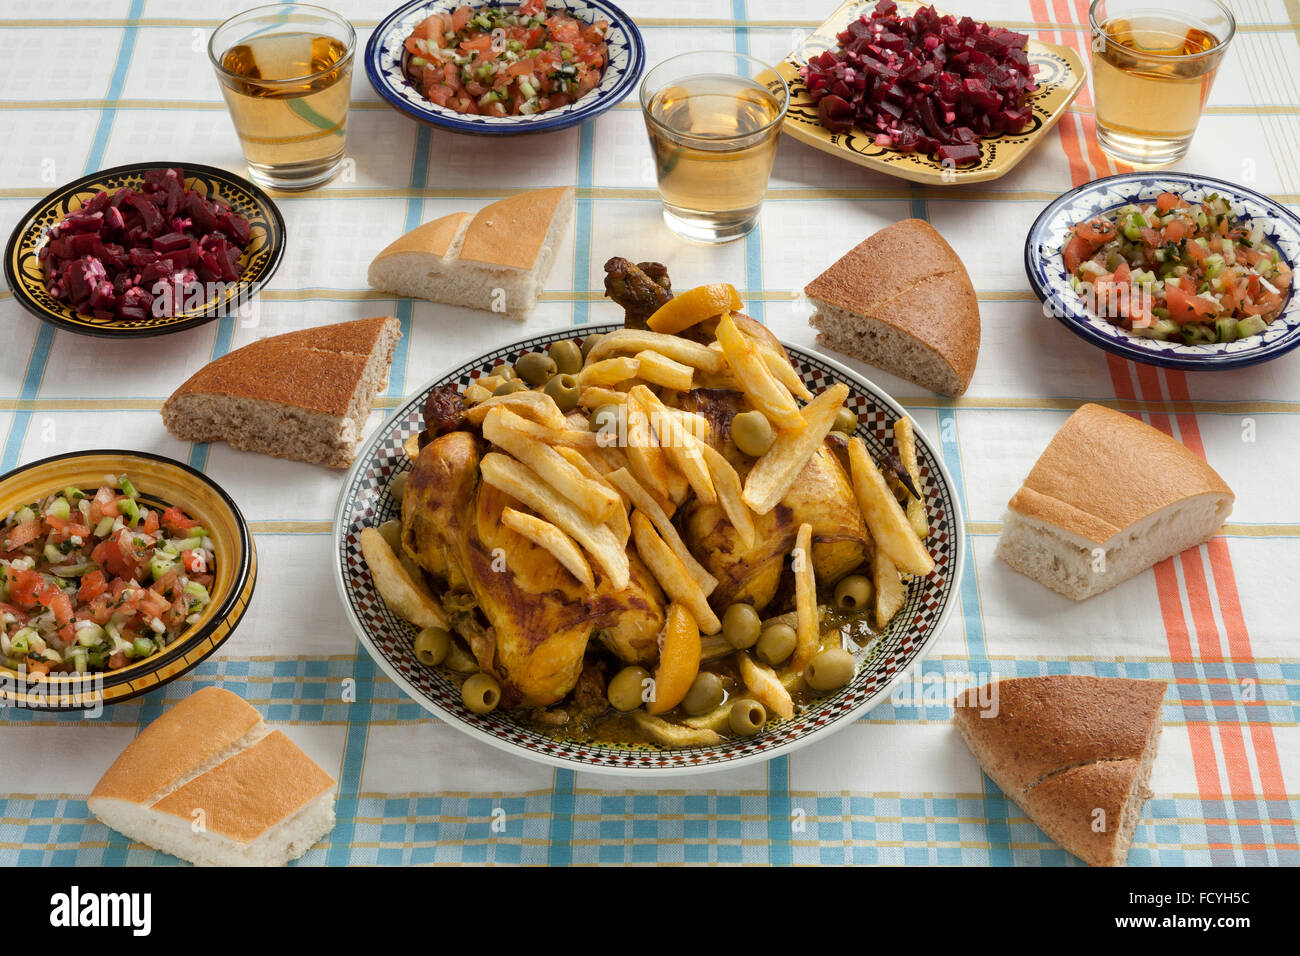 Traditional moroccan stuffed chicken meal with french fries, olives,,preserved lemon,bread and salads on the table - Stock Image